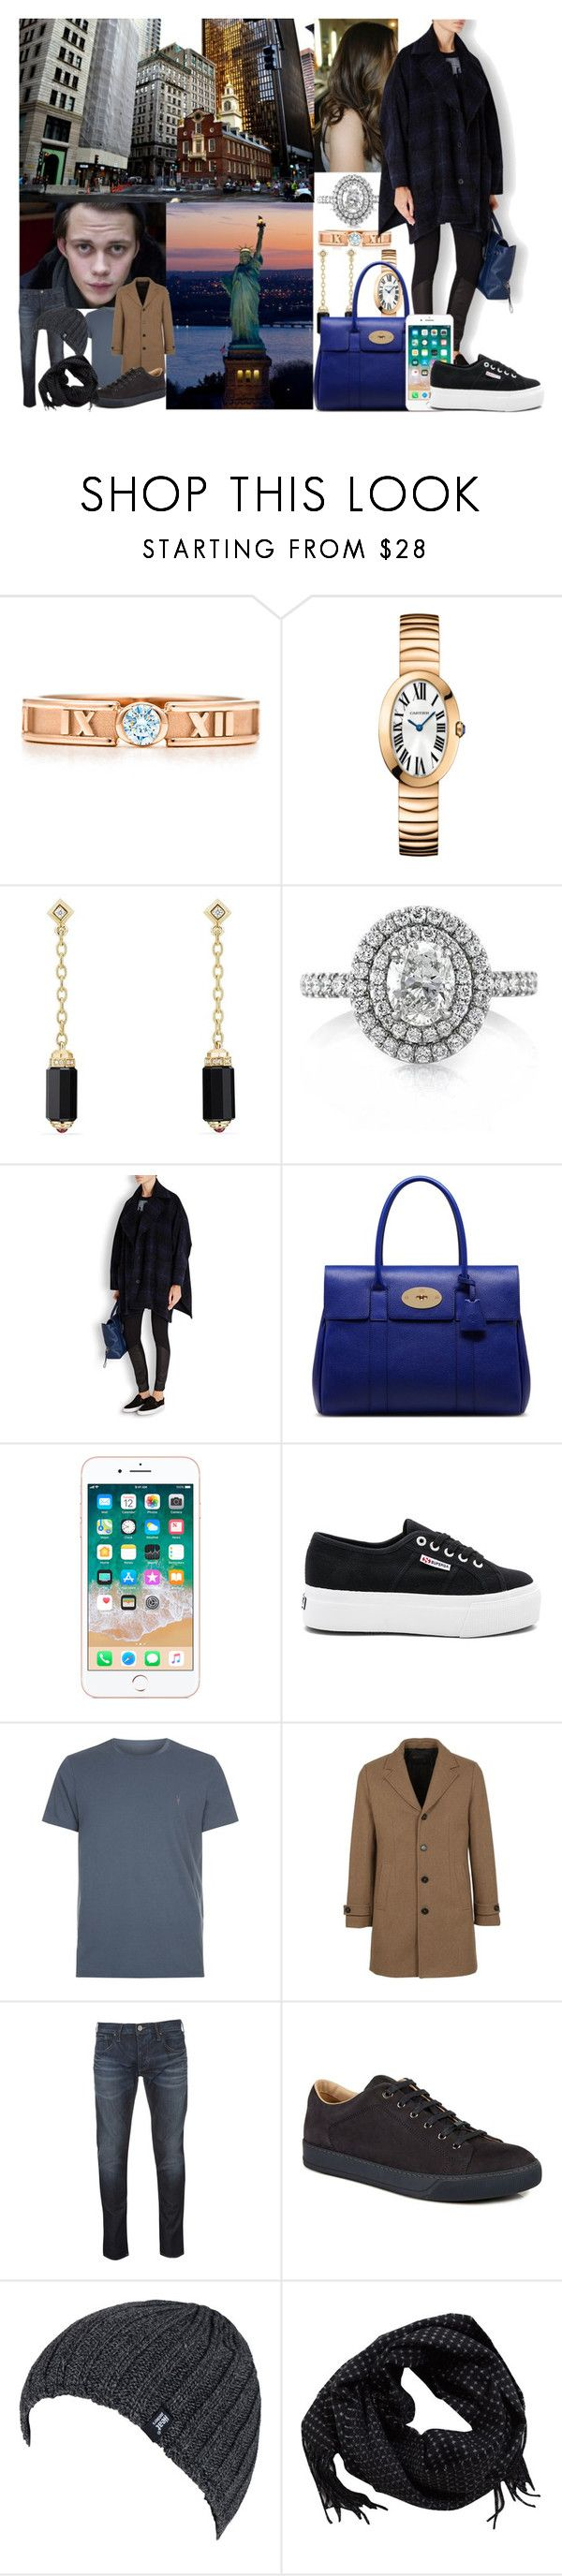 """Sightseeing in New York"" by princessofnorth ❤ liked on Polyvore featuring David Yurman, Mark Broumand, pureDKNY, Mulberry, Superga, Metropolis, AllSaints, Paltò, Armani Jeans and Lanvin"